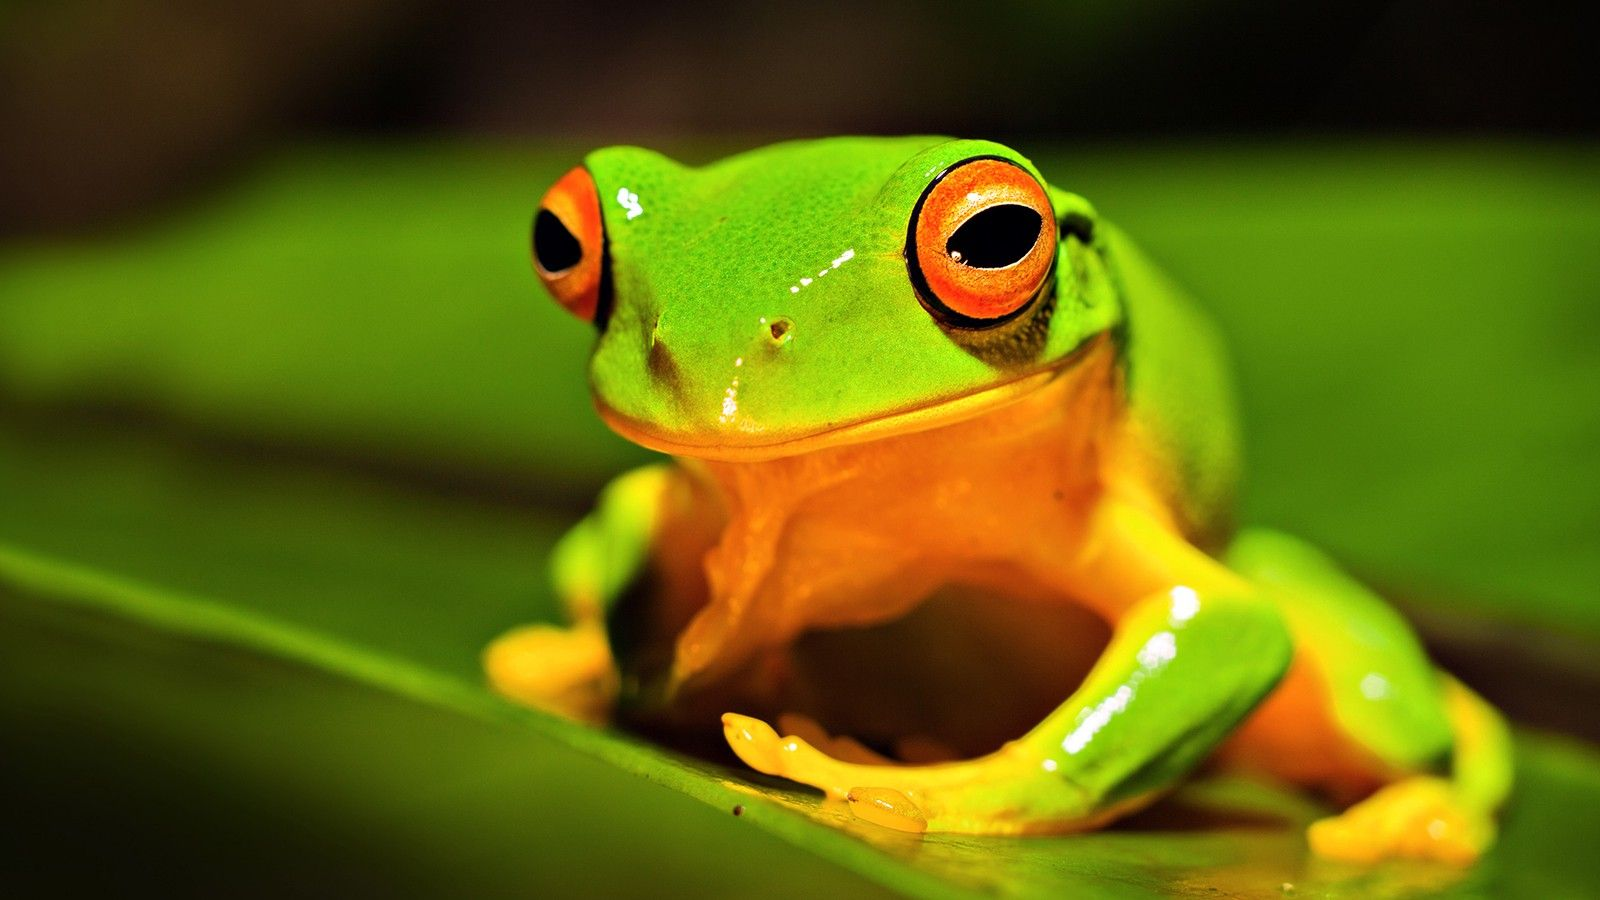 Frog Wallpapers Images Photos Pictures Pics Frog Wallpapers